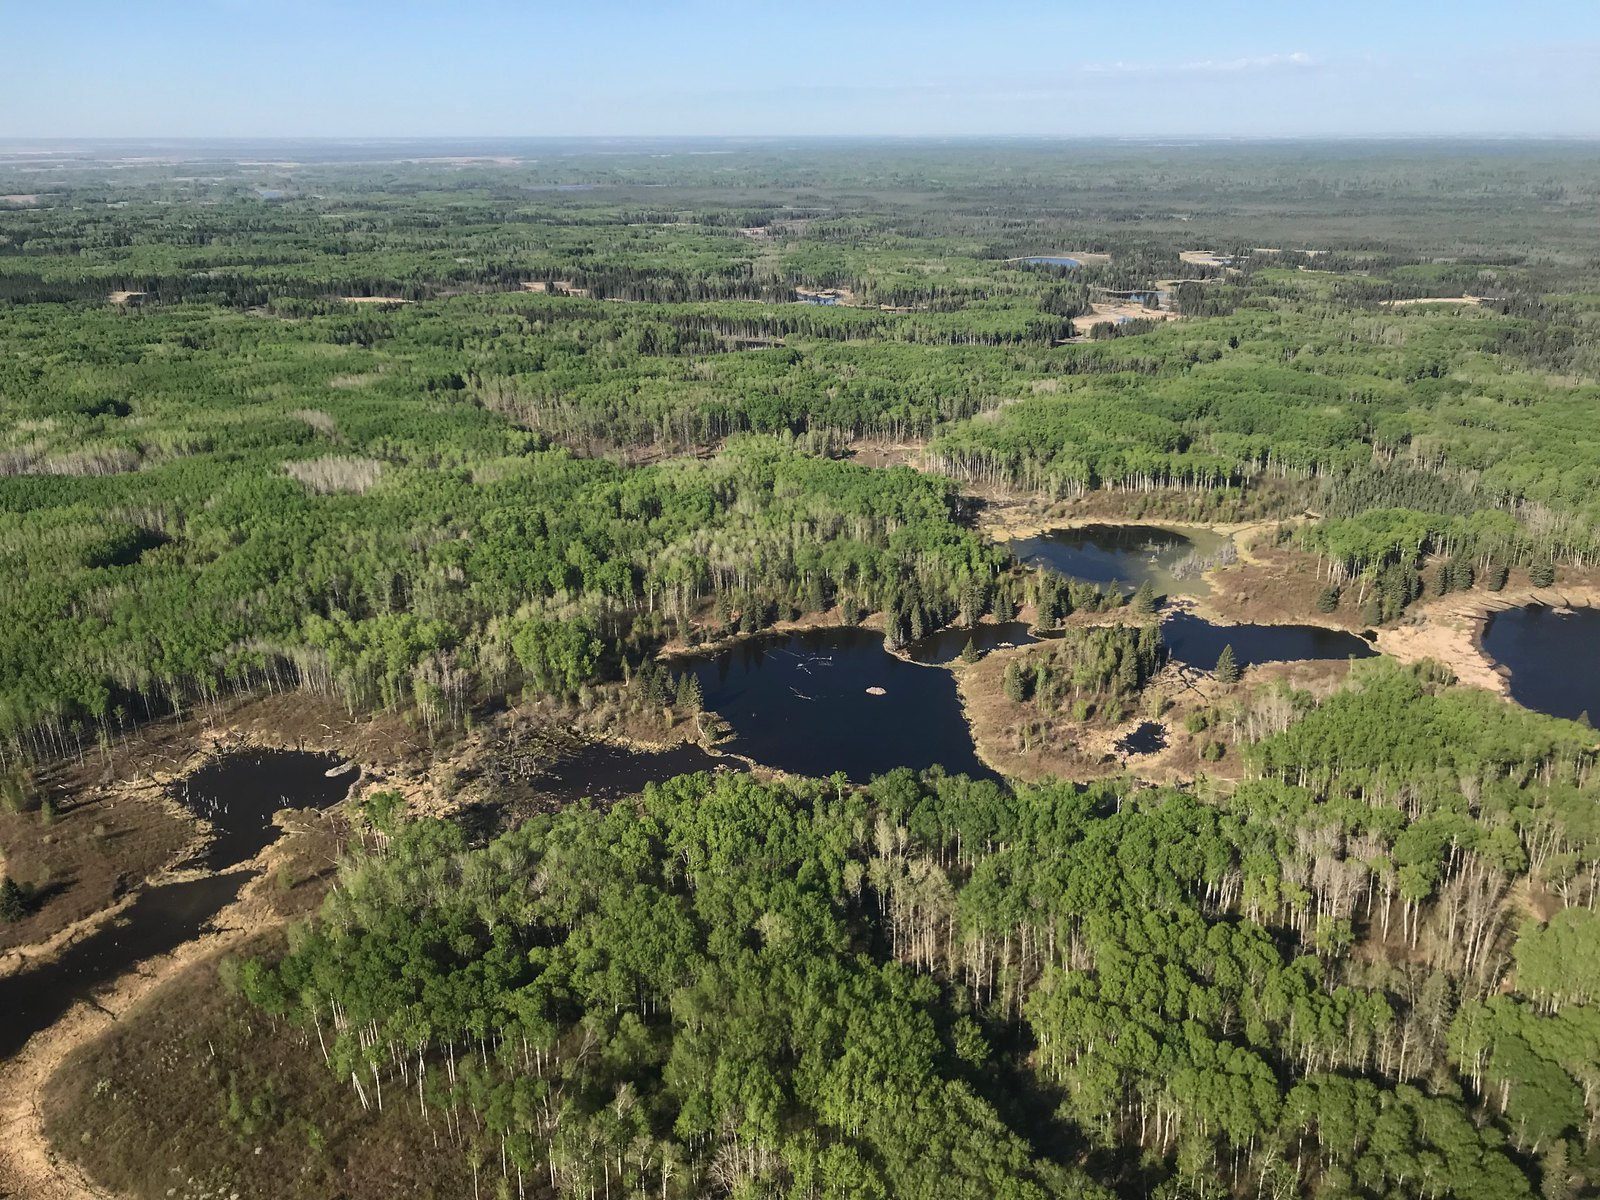 Parkland and boreal transition areas have the habitat for good waterfowl recruitment to occur. Photo Credit: P. Thorpe, USFWS